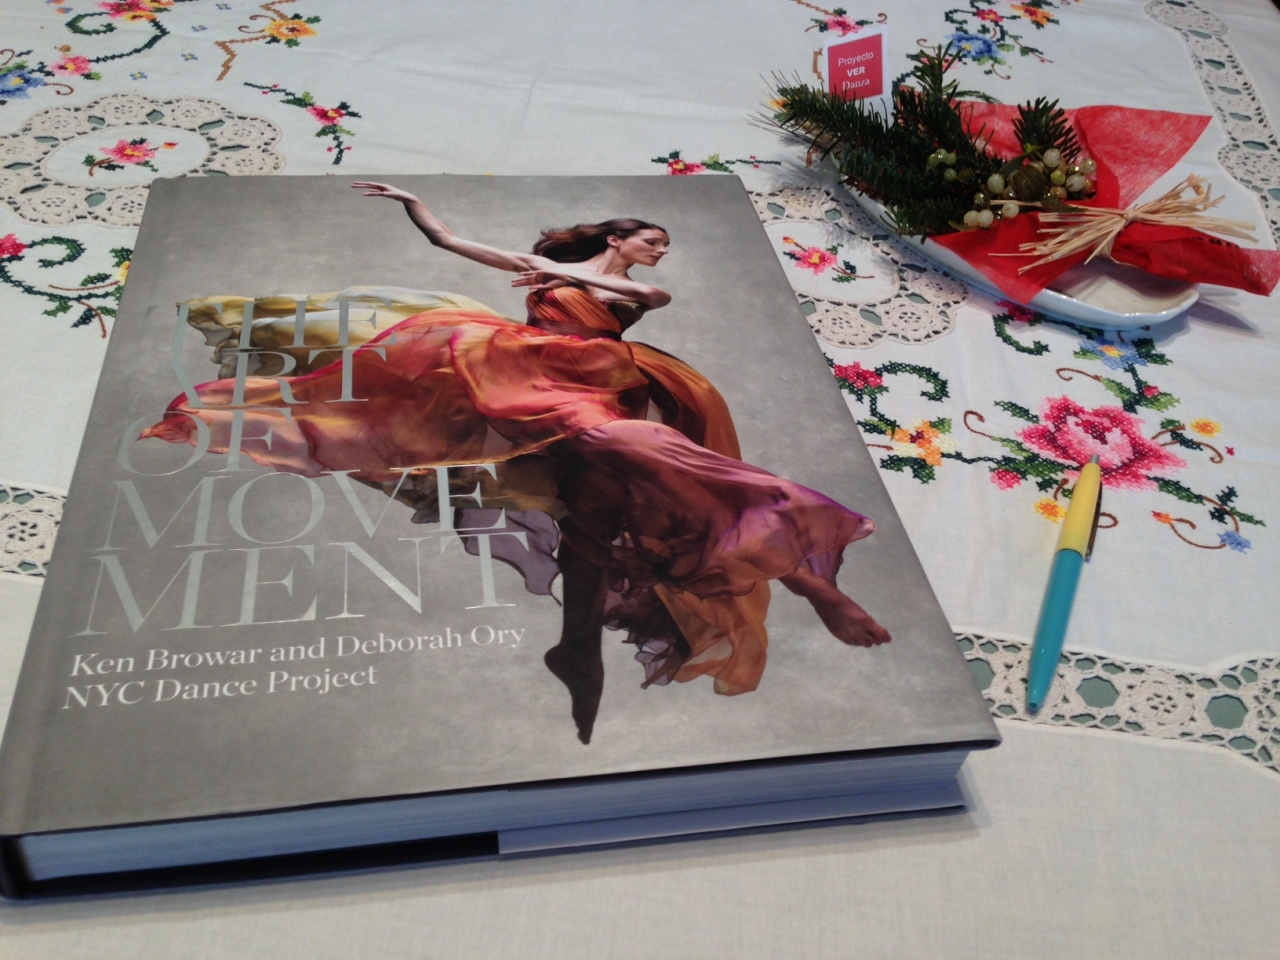 Sorteo de Reyes de PROYECTO VER DANZA del espectacular libro de fotografías THE ART OF MOVEMENT de NYC Dance Project